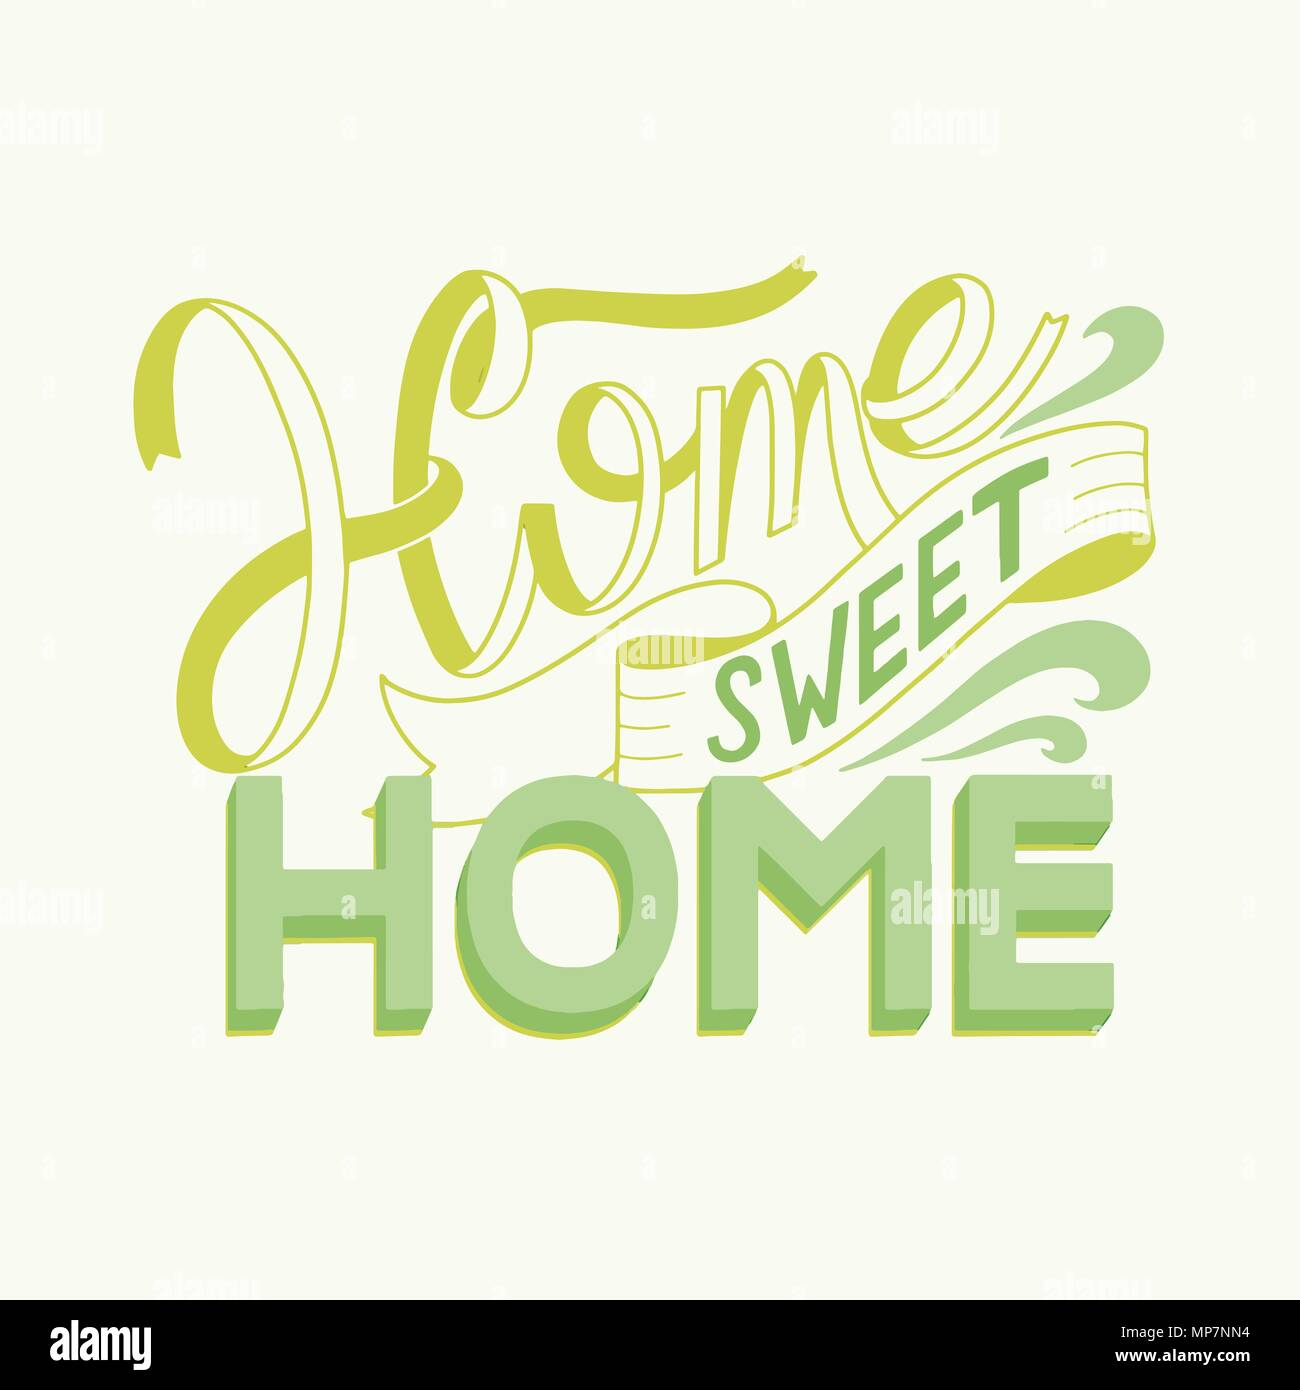 Home Sweet Home Lettering Vector Elements For Invitations Posters